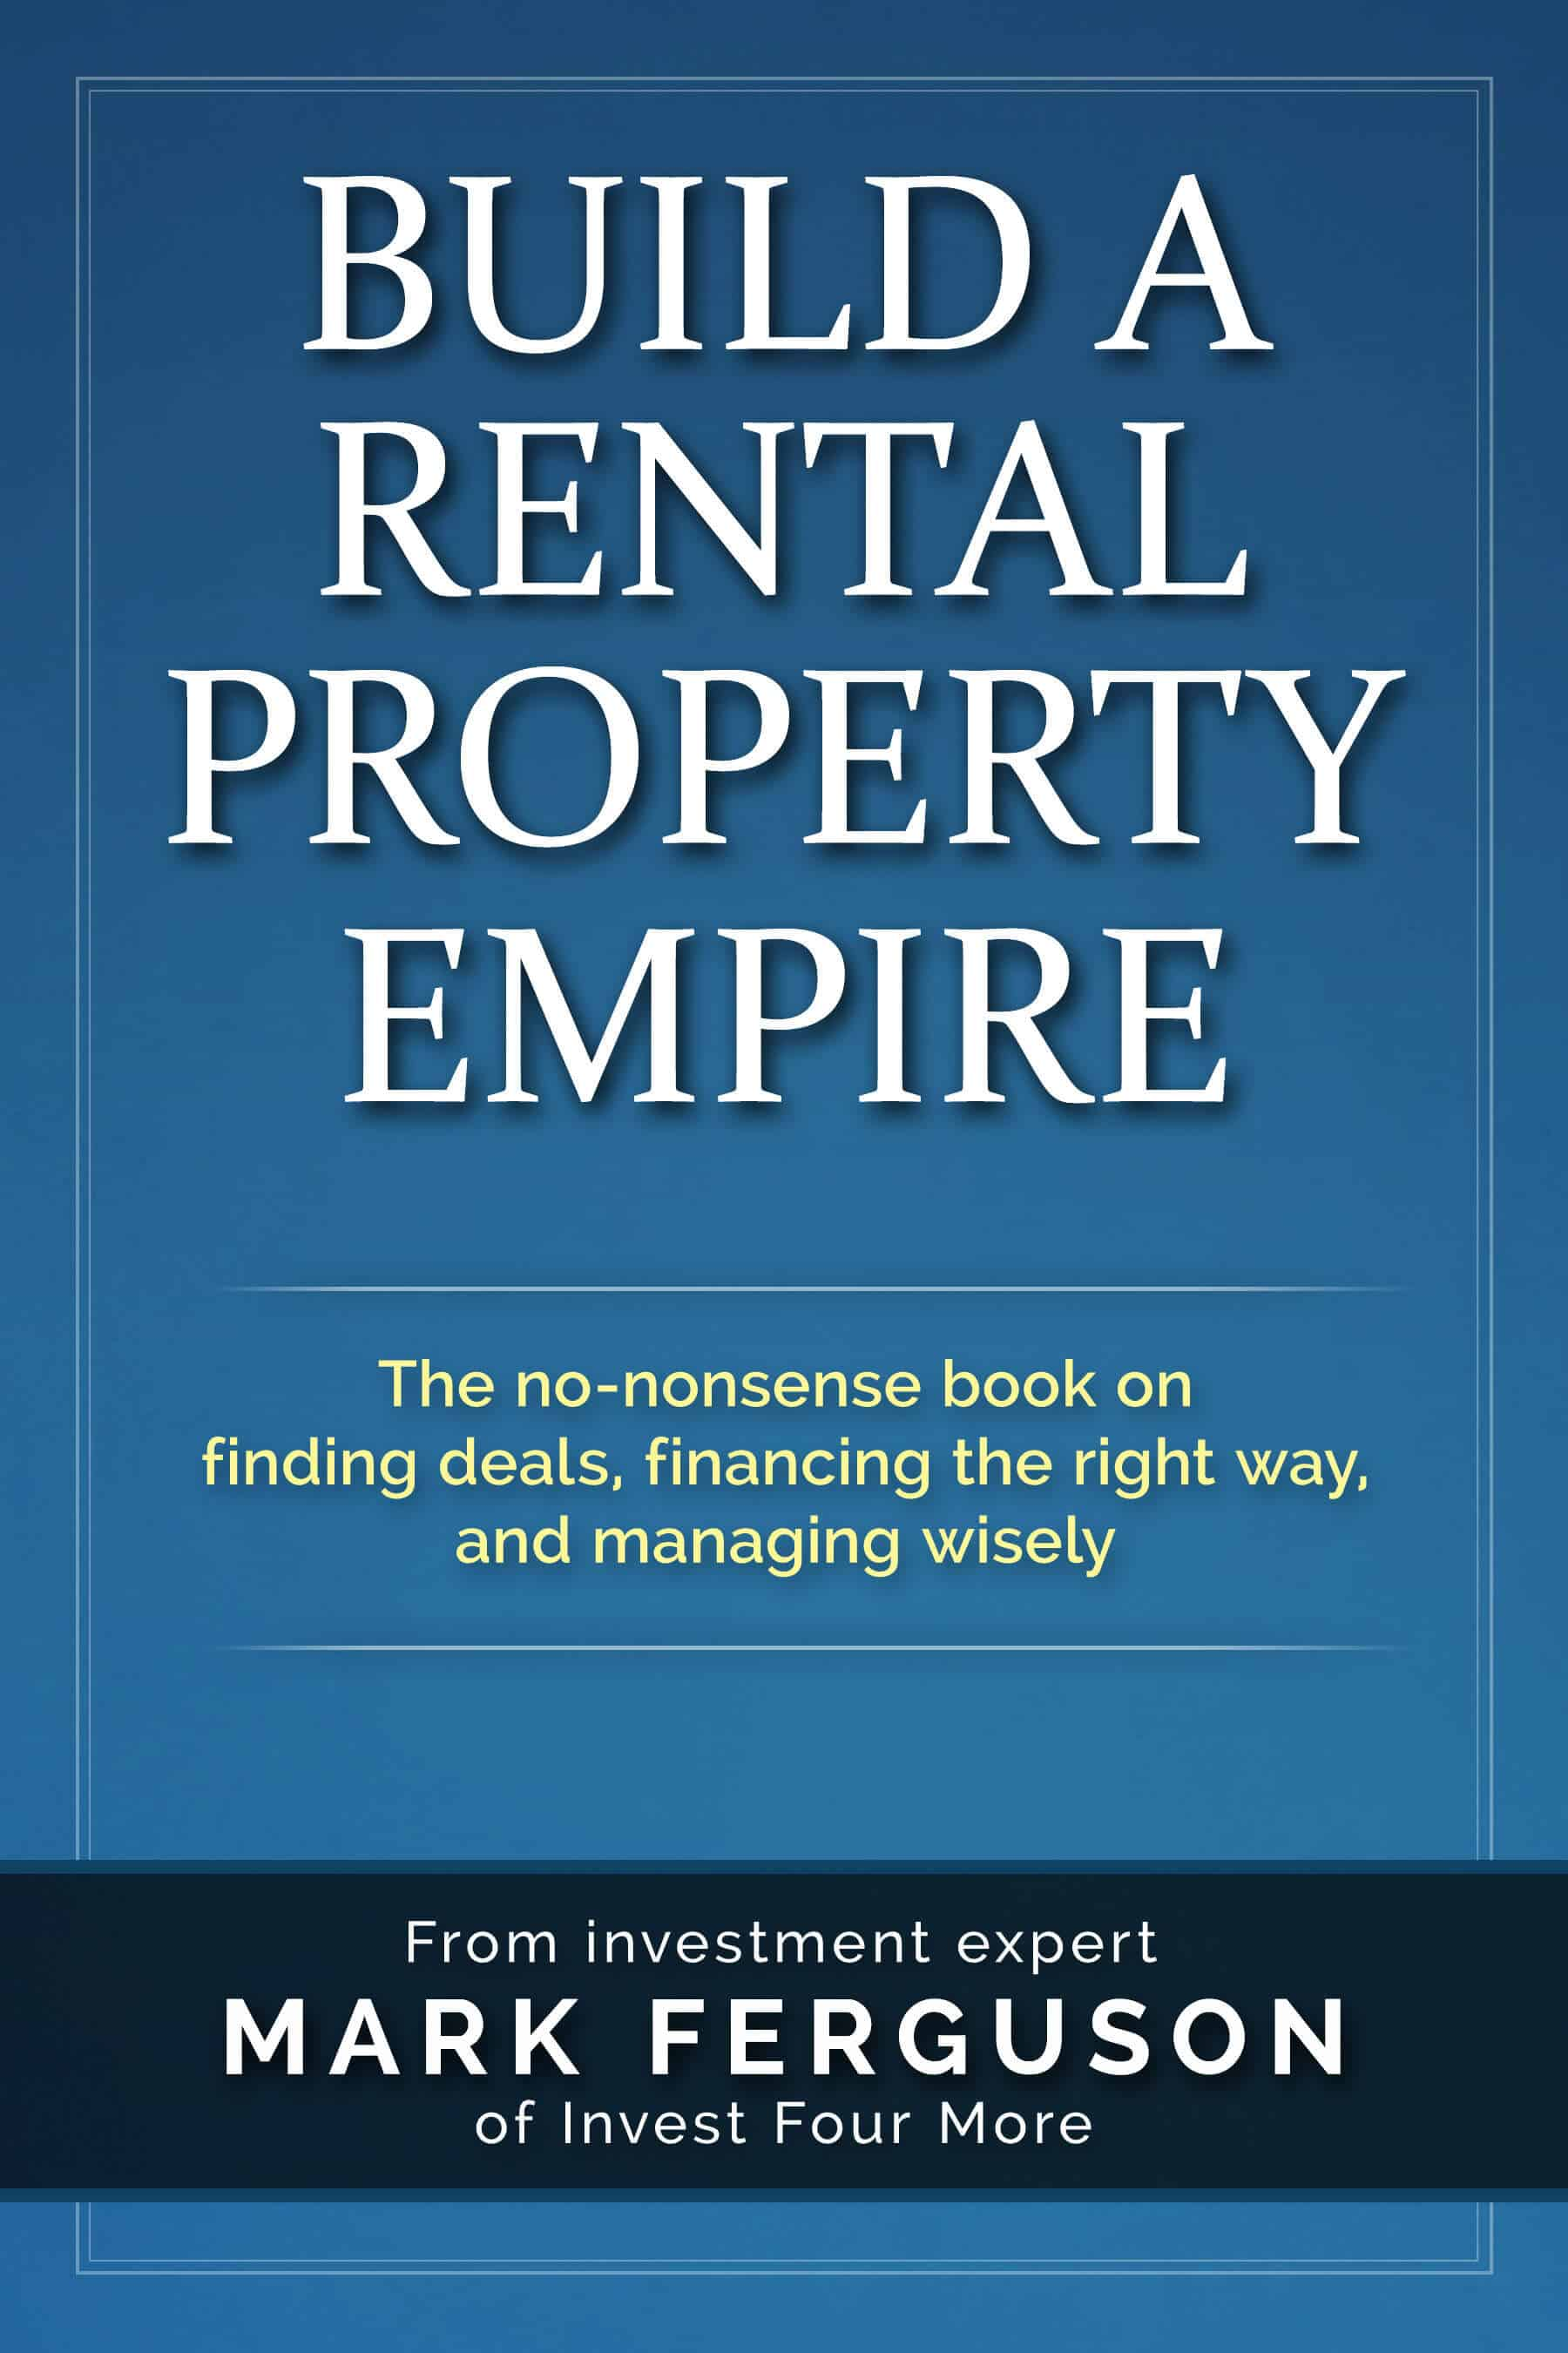 My new rental property book is finished and available in paperback my new rental property book is finished and available in paperback invest four more fandeluxe Ebook collections